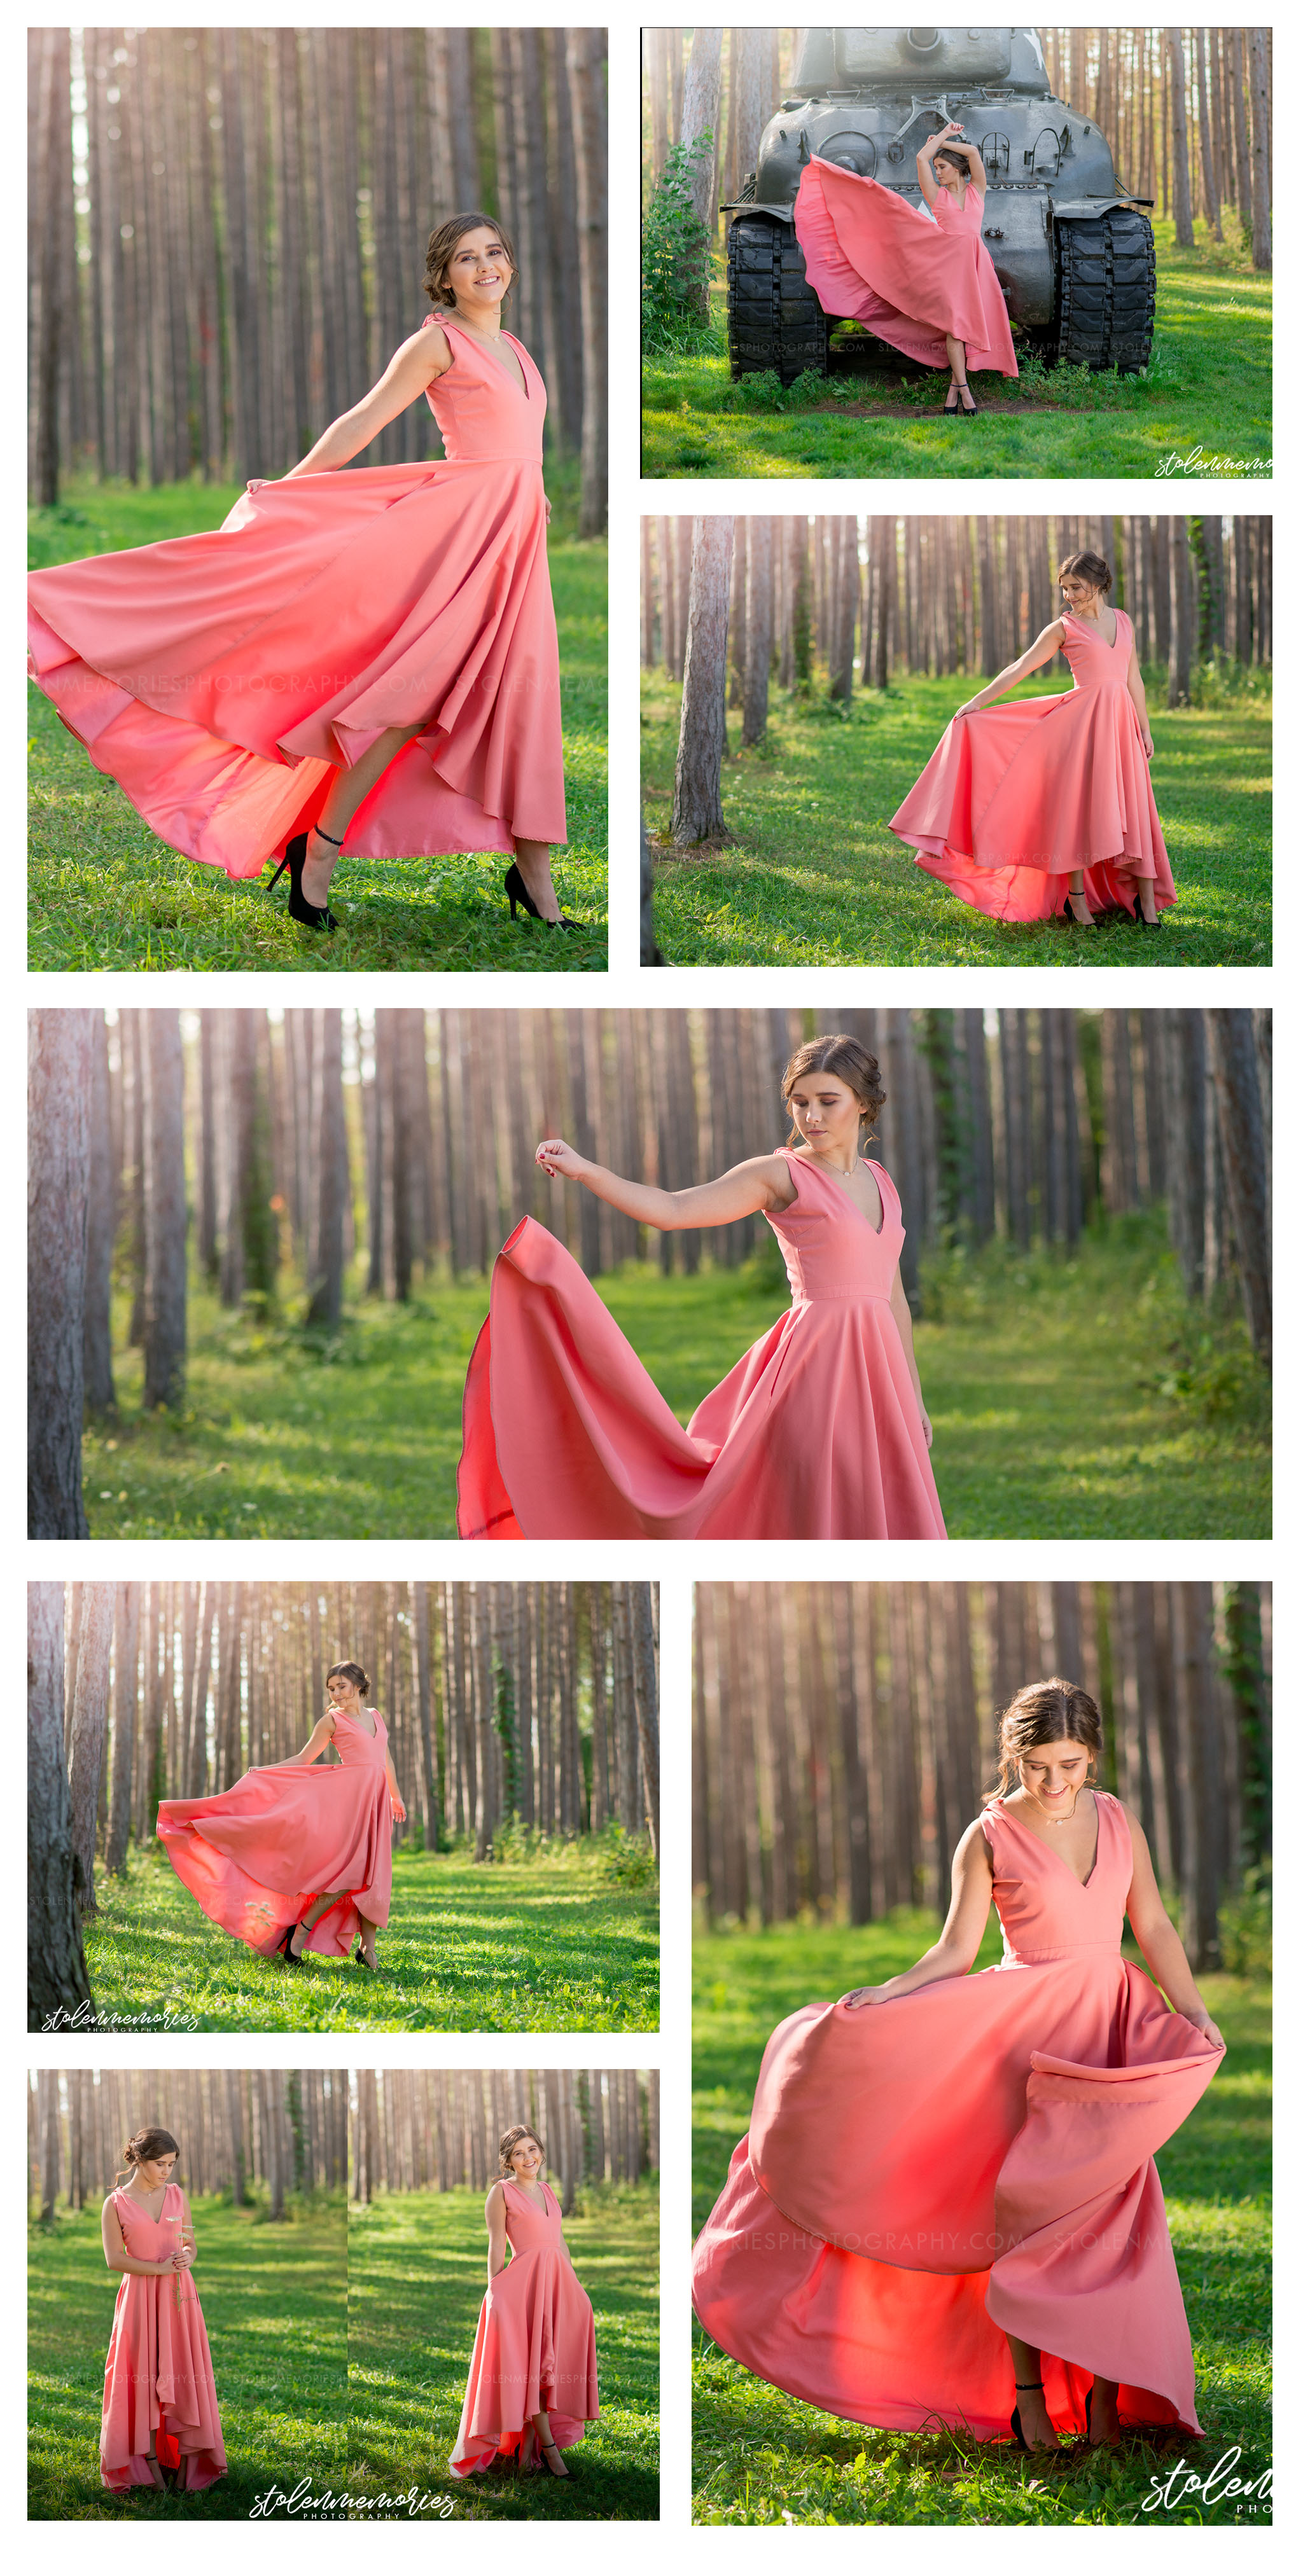 state-college-pa-senior-photographer-romantic-castle-bright-woods-session4.png